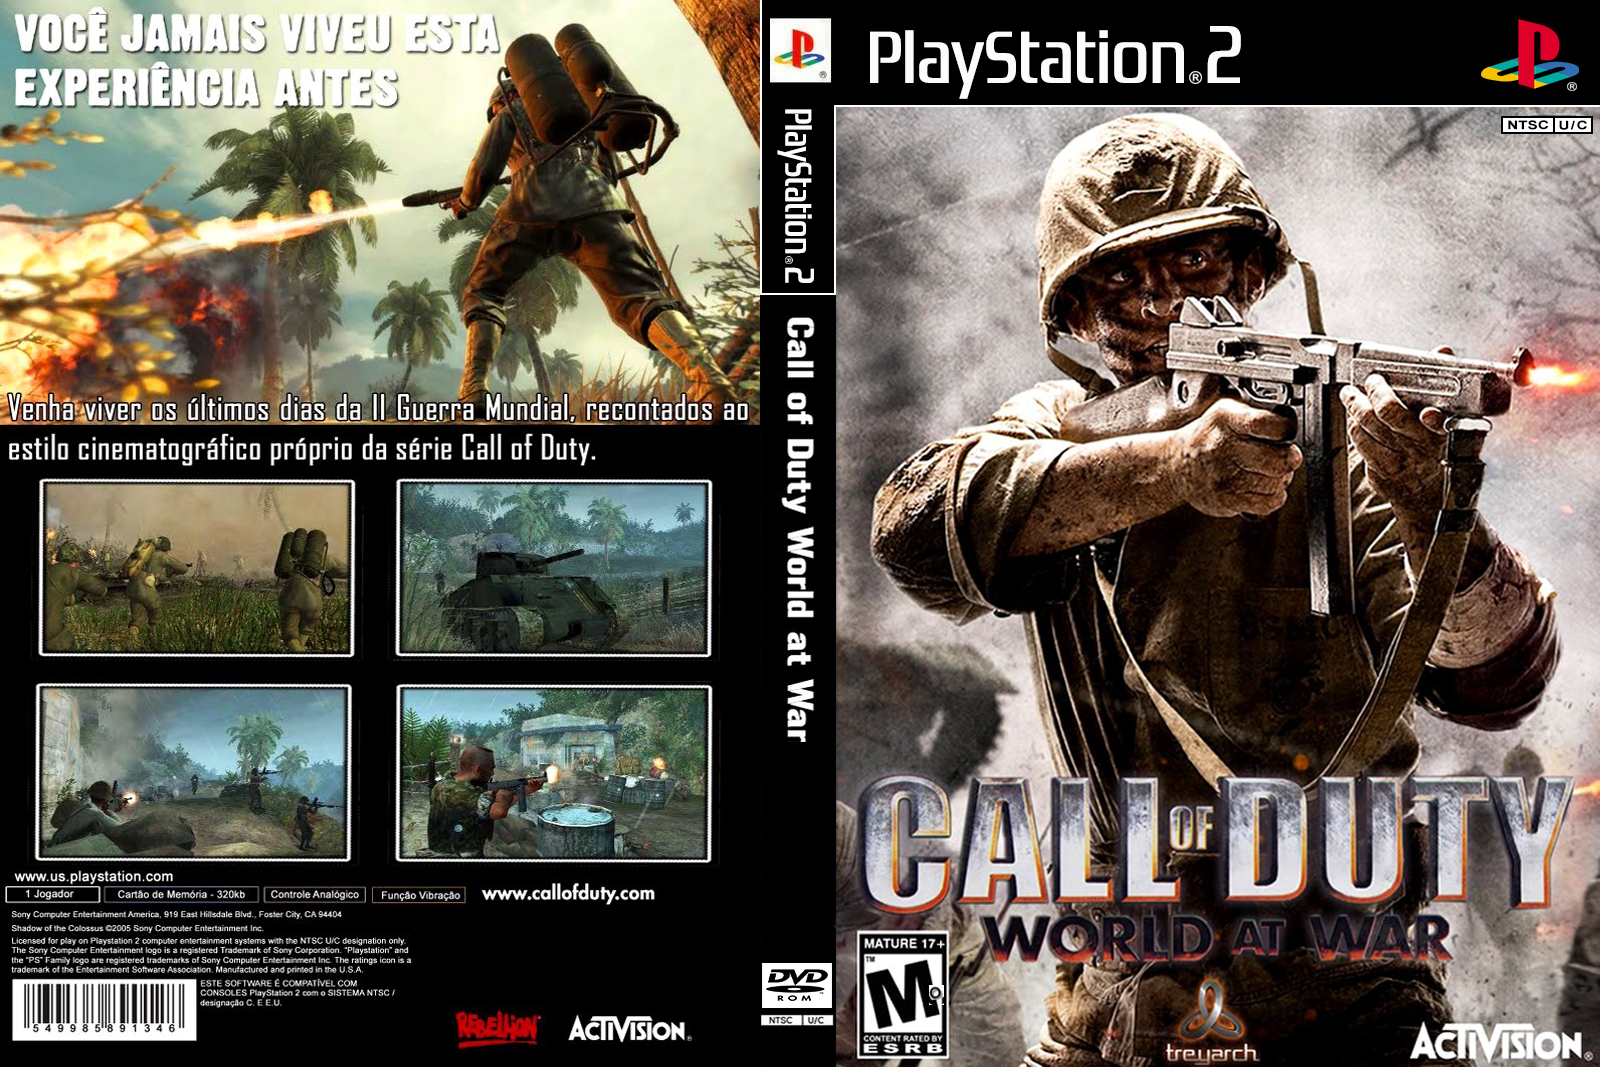 ps2 cover call of duty 4 world at war palntscuc